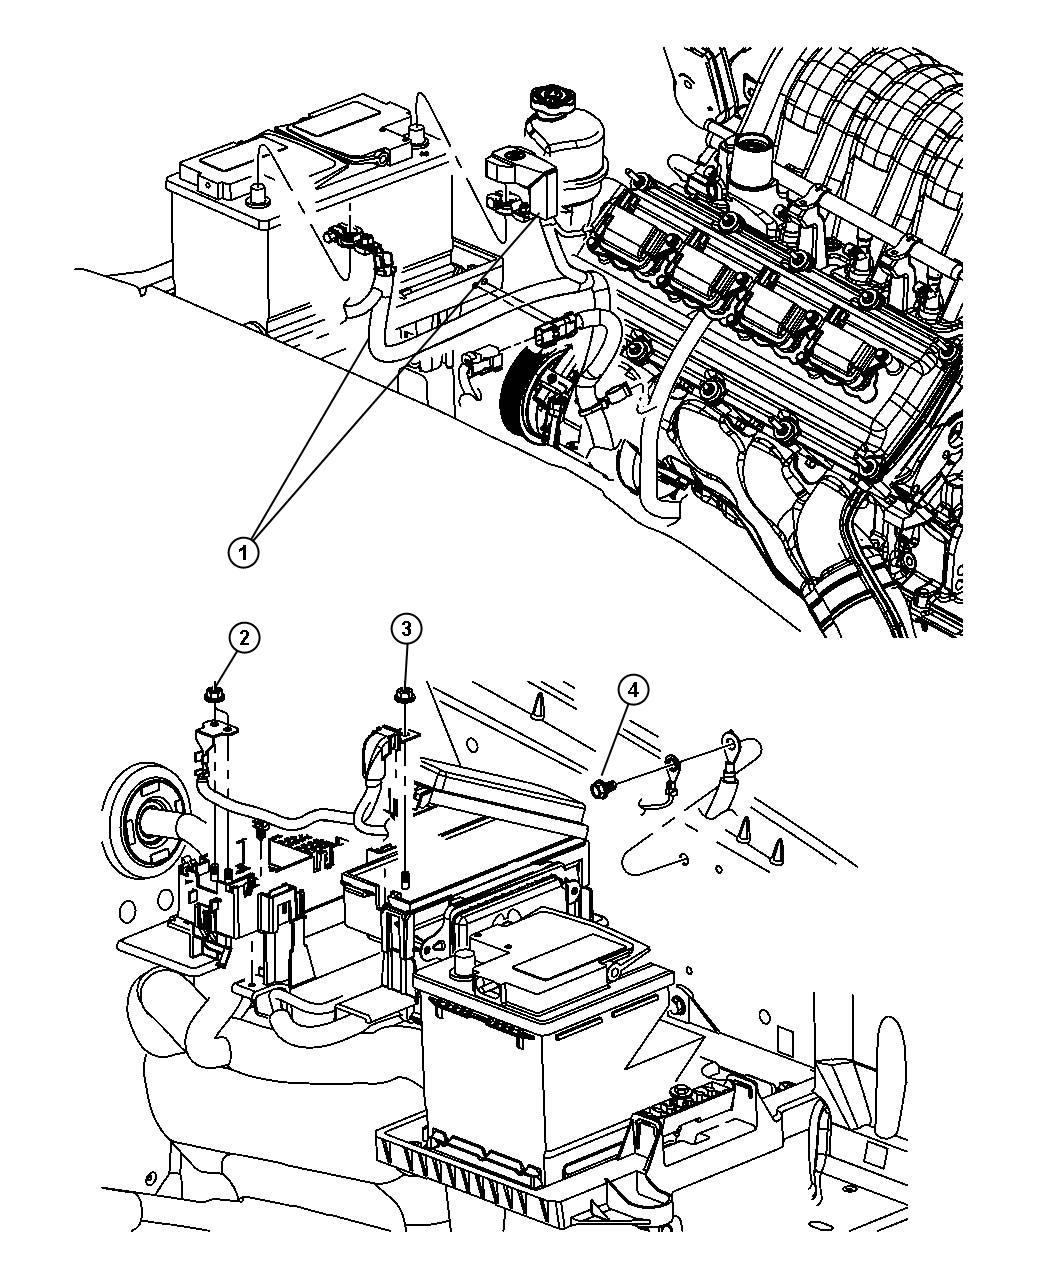 2009 jeep grand cherokee engine diagram diagram  06 jeep grand cherokee speaker wiring diagram full  06 jeep grand cherokee speaker wiring